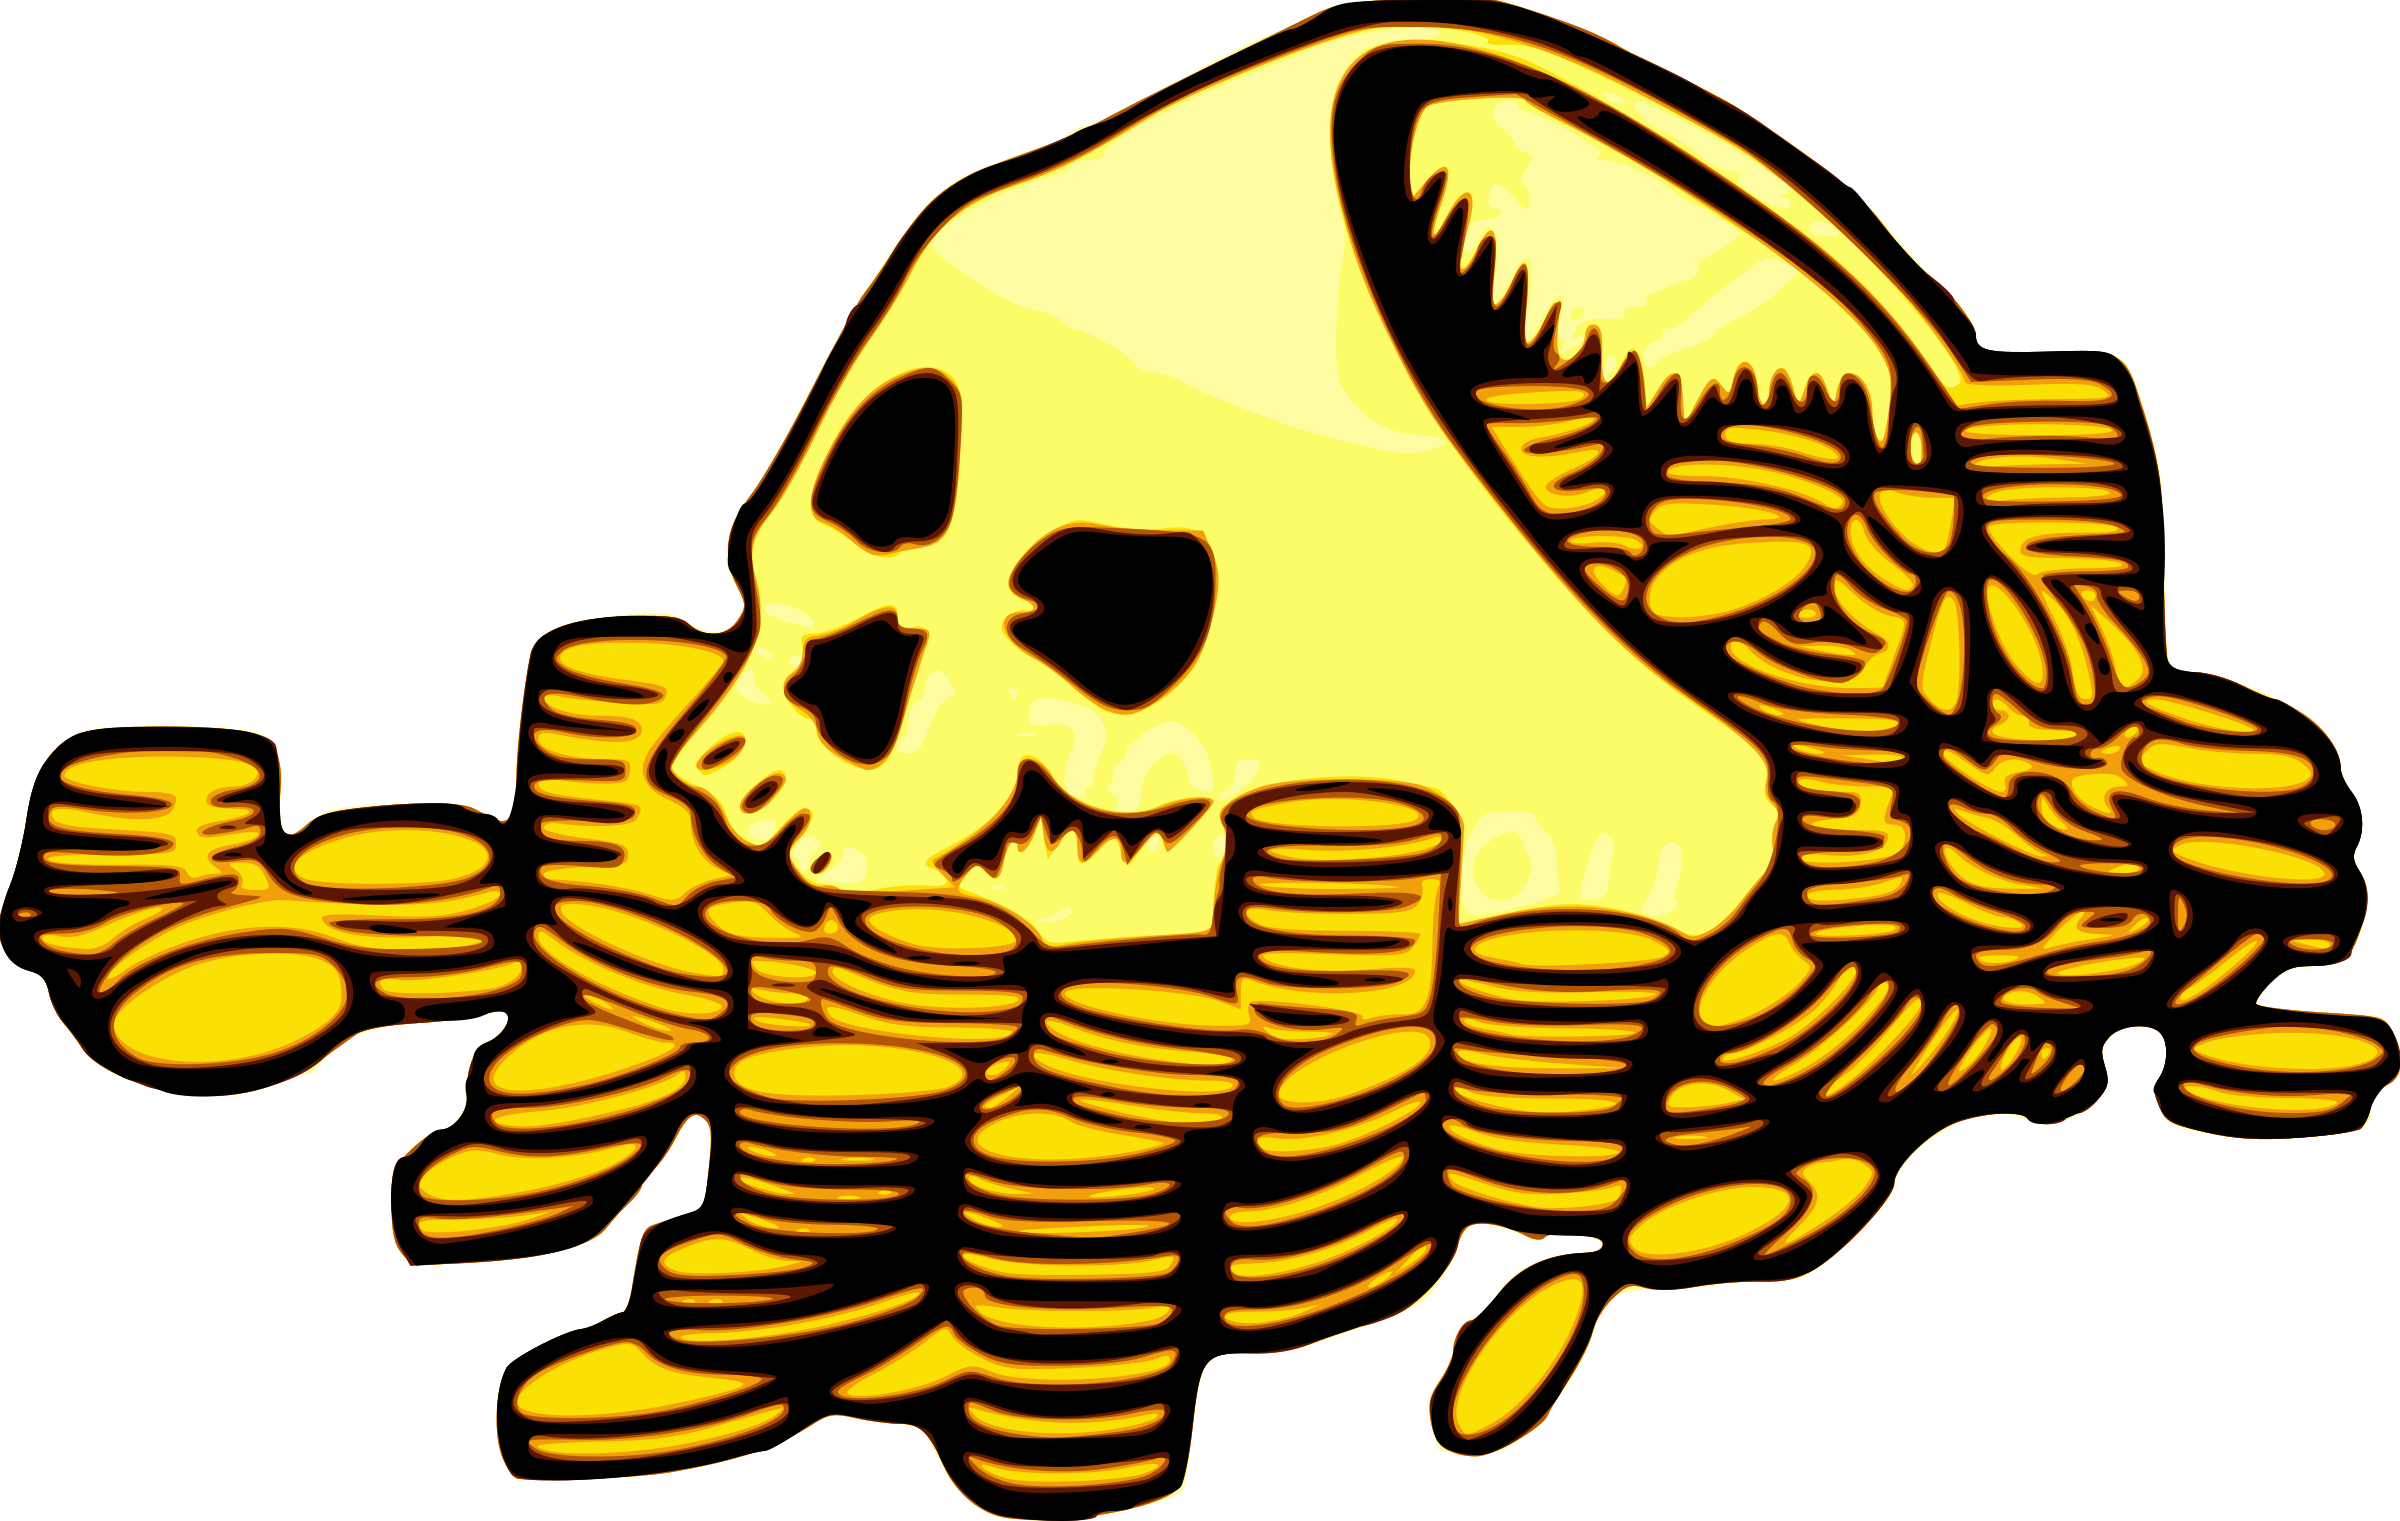 York risk services group. Pirates clipart tool